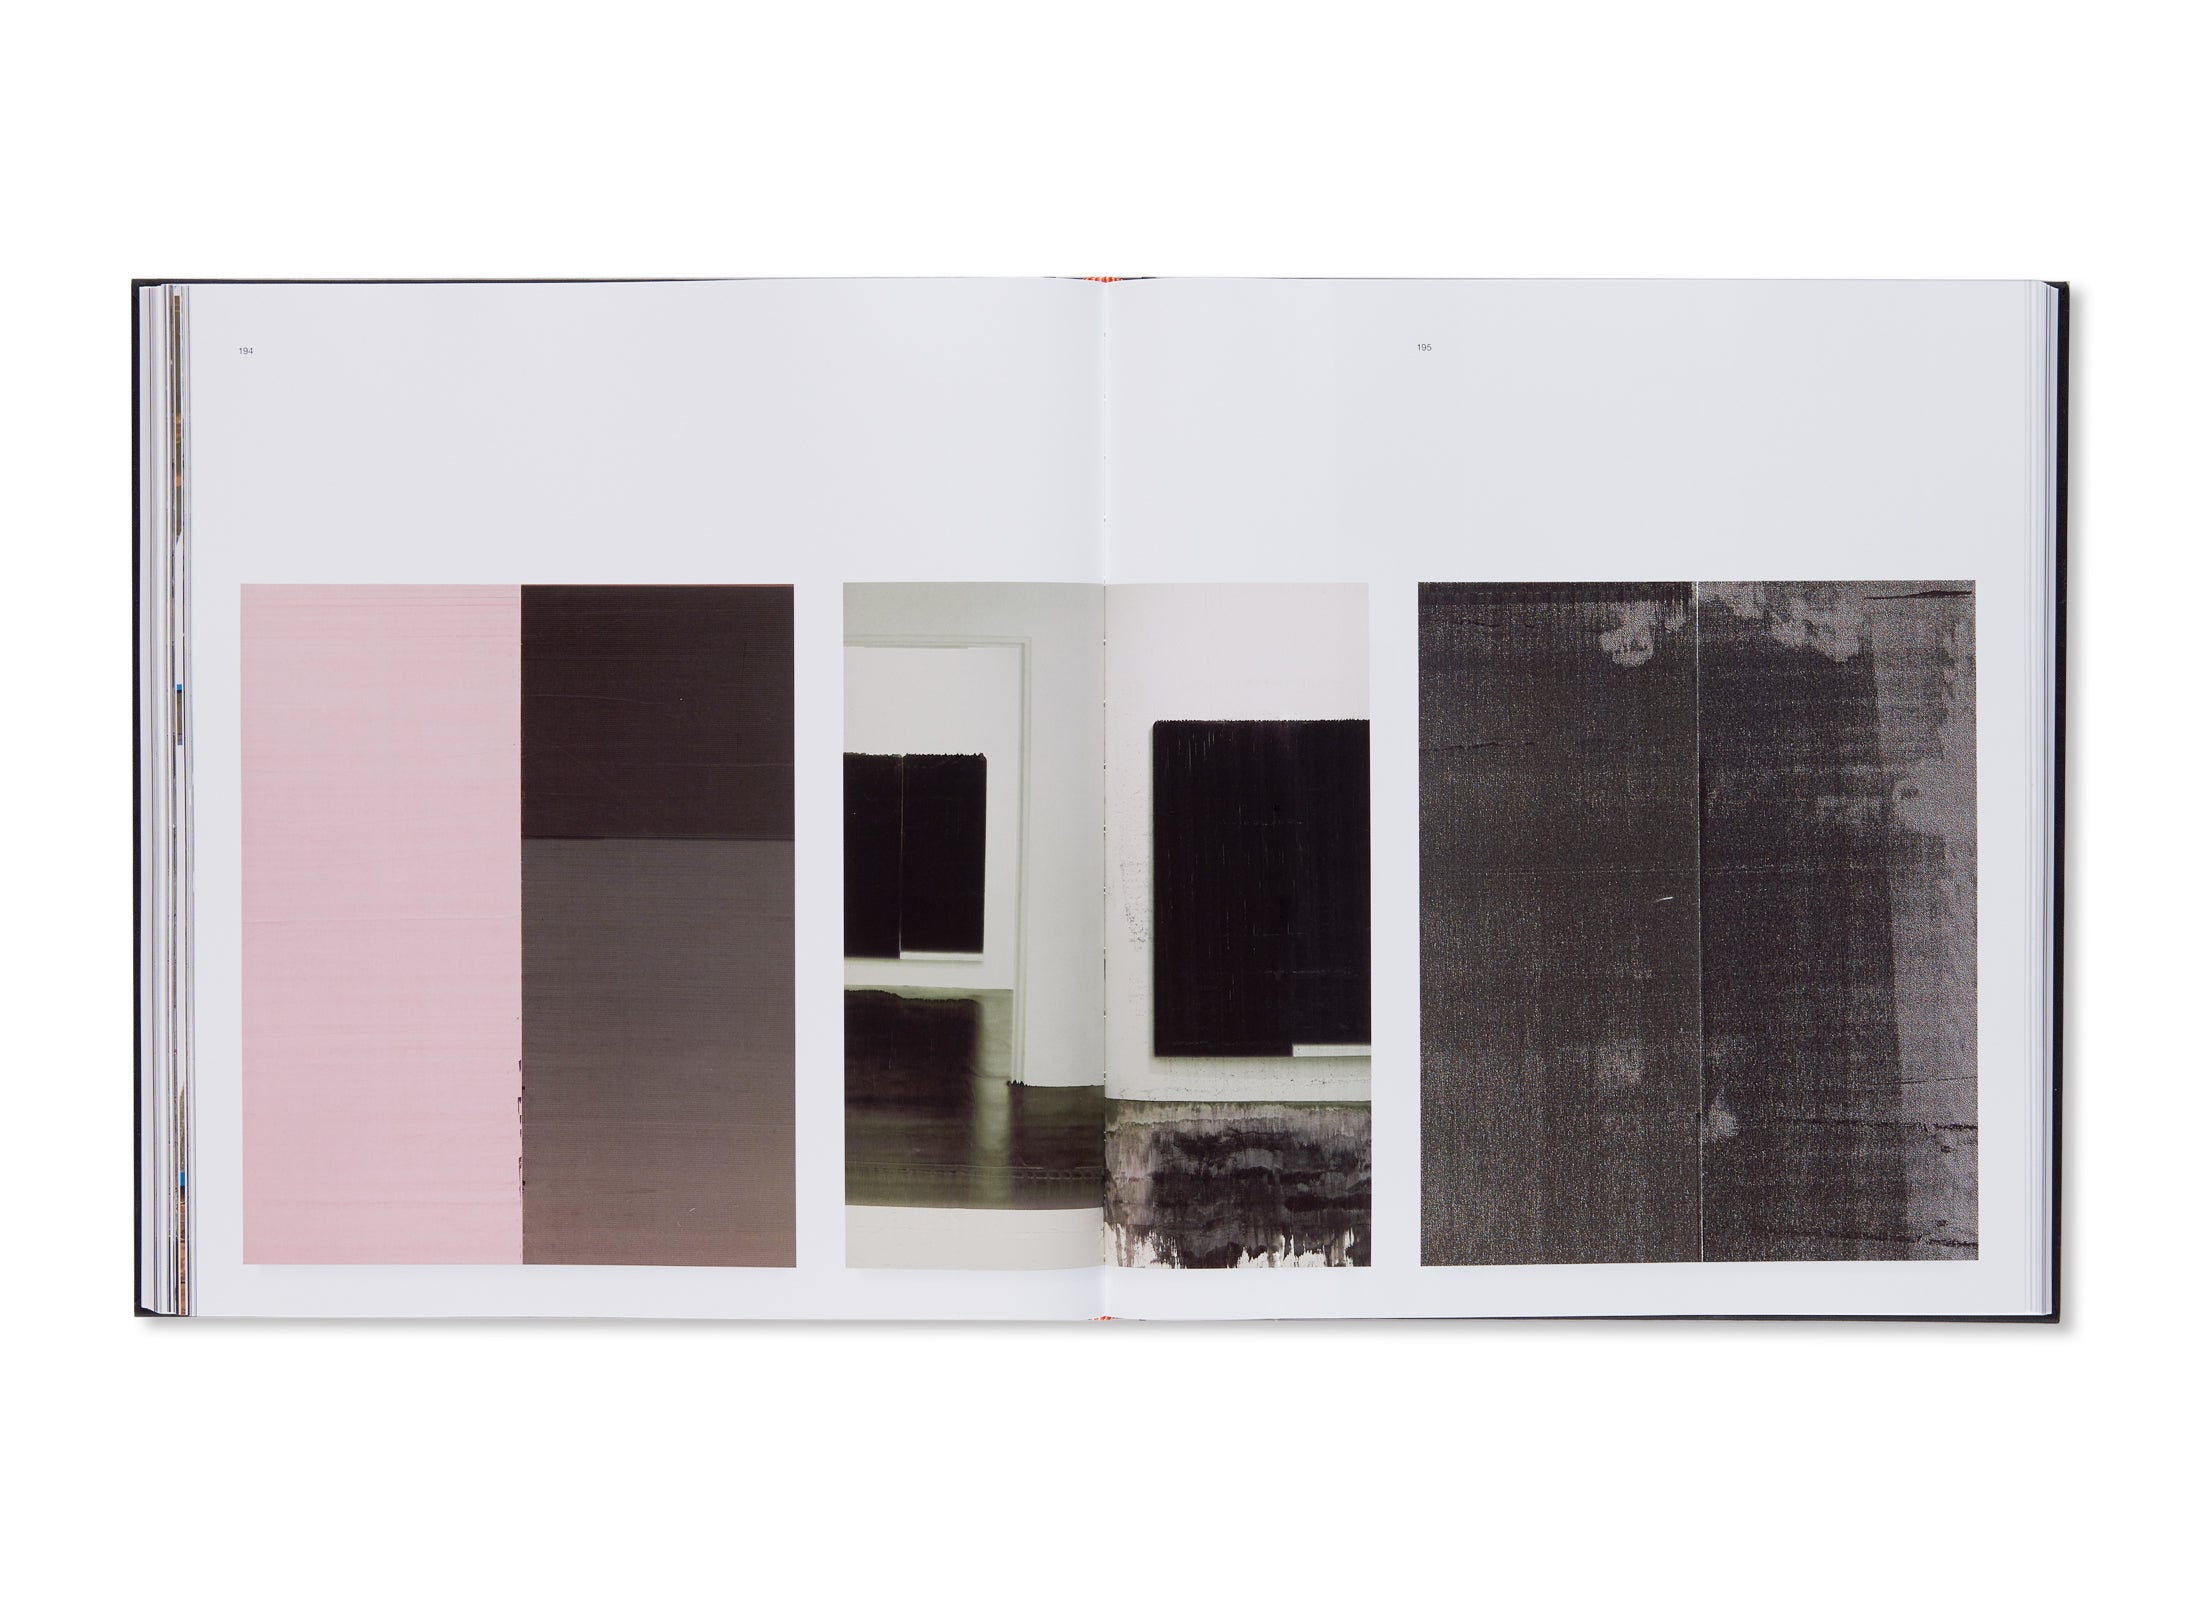 DAS NEW YORKER ATELIER MUSEUM BRANDHORST by Wade Guyton